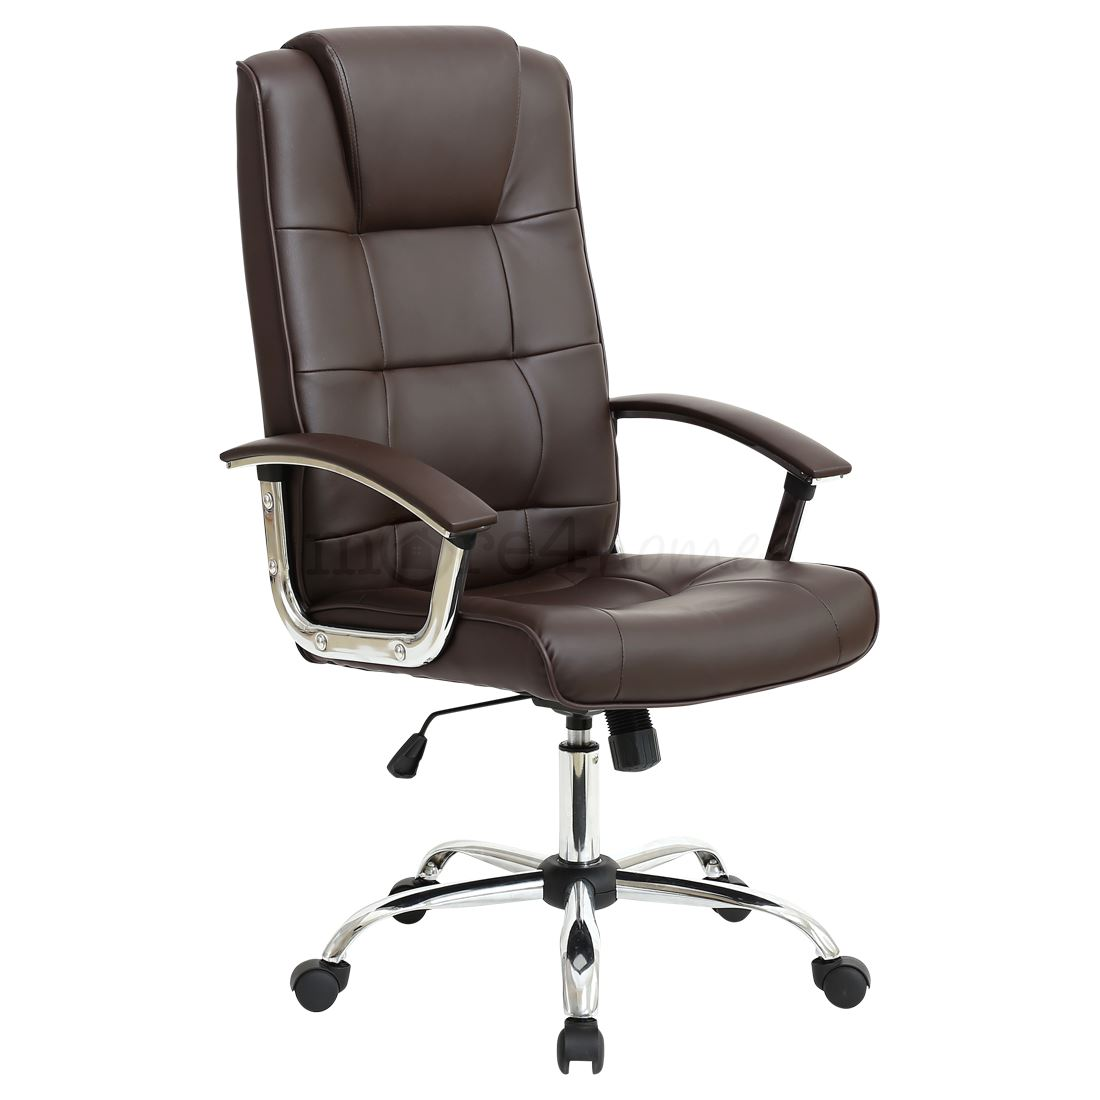 Executive Office Furniture: GRANDE HIGH BACK EXECUTIVE LEATHER OFFICE CHAIR COMPUTER